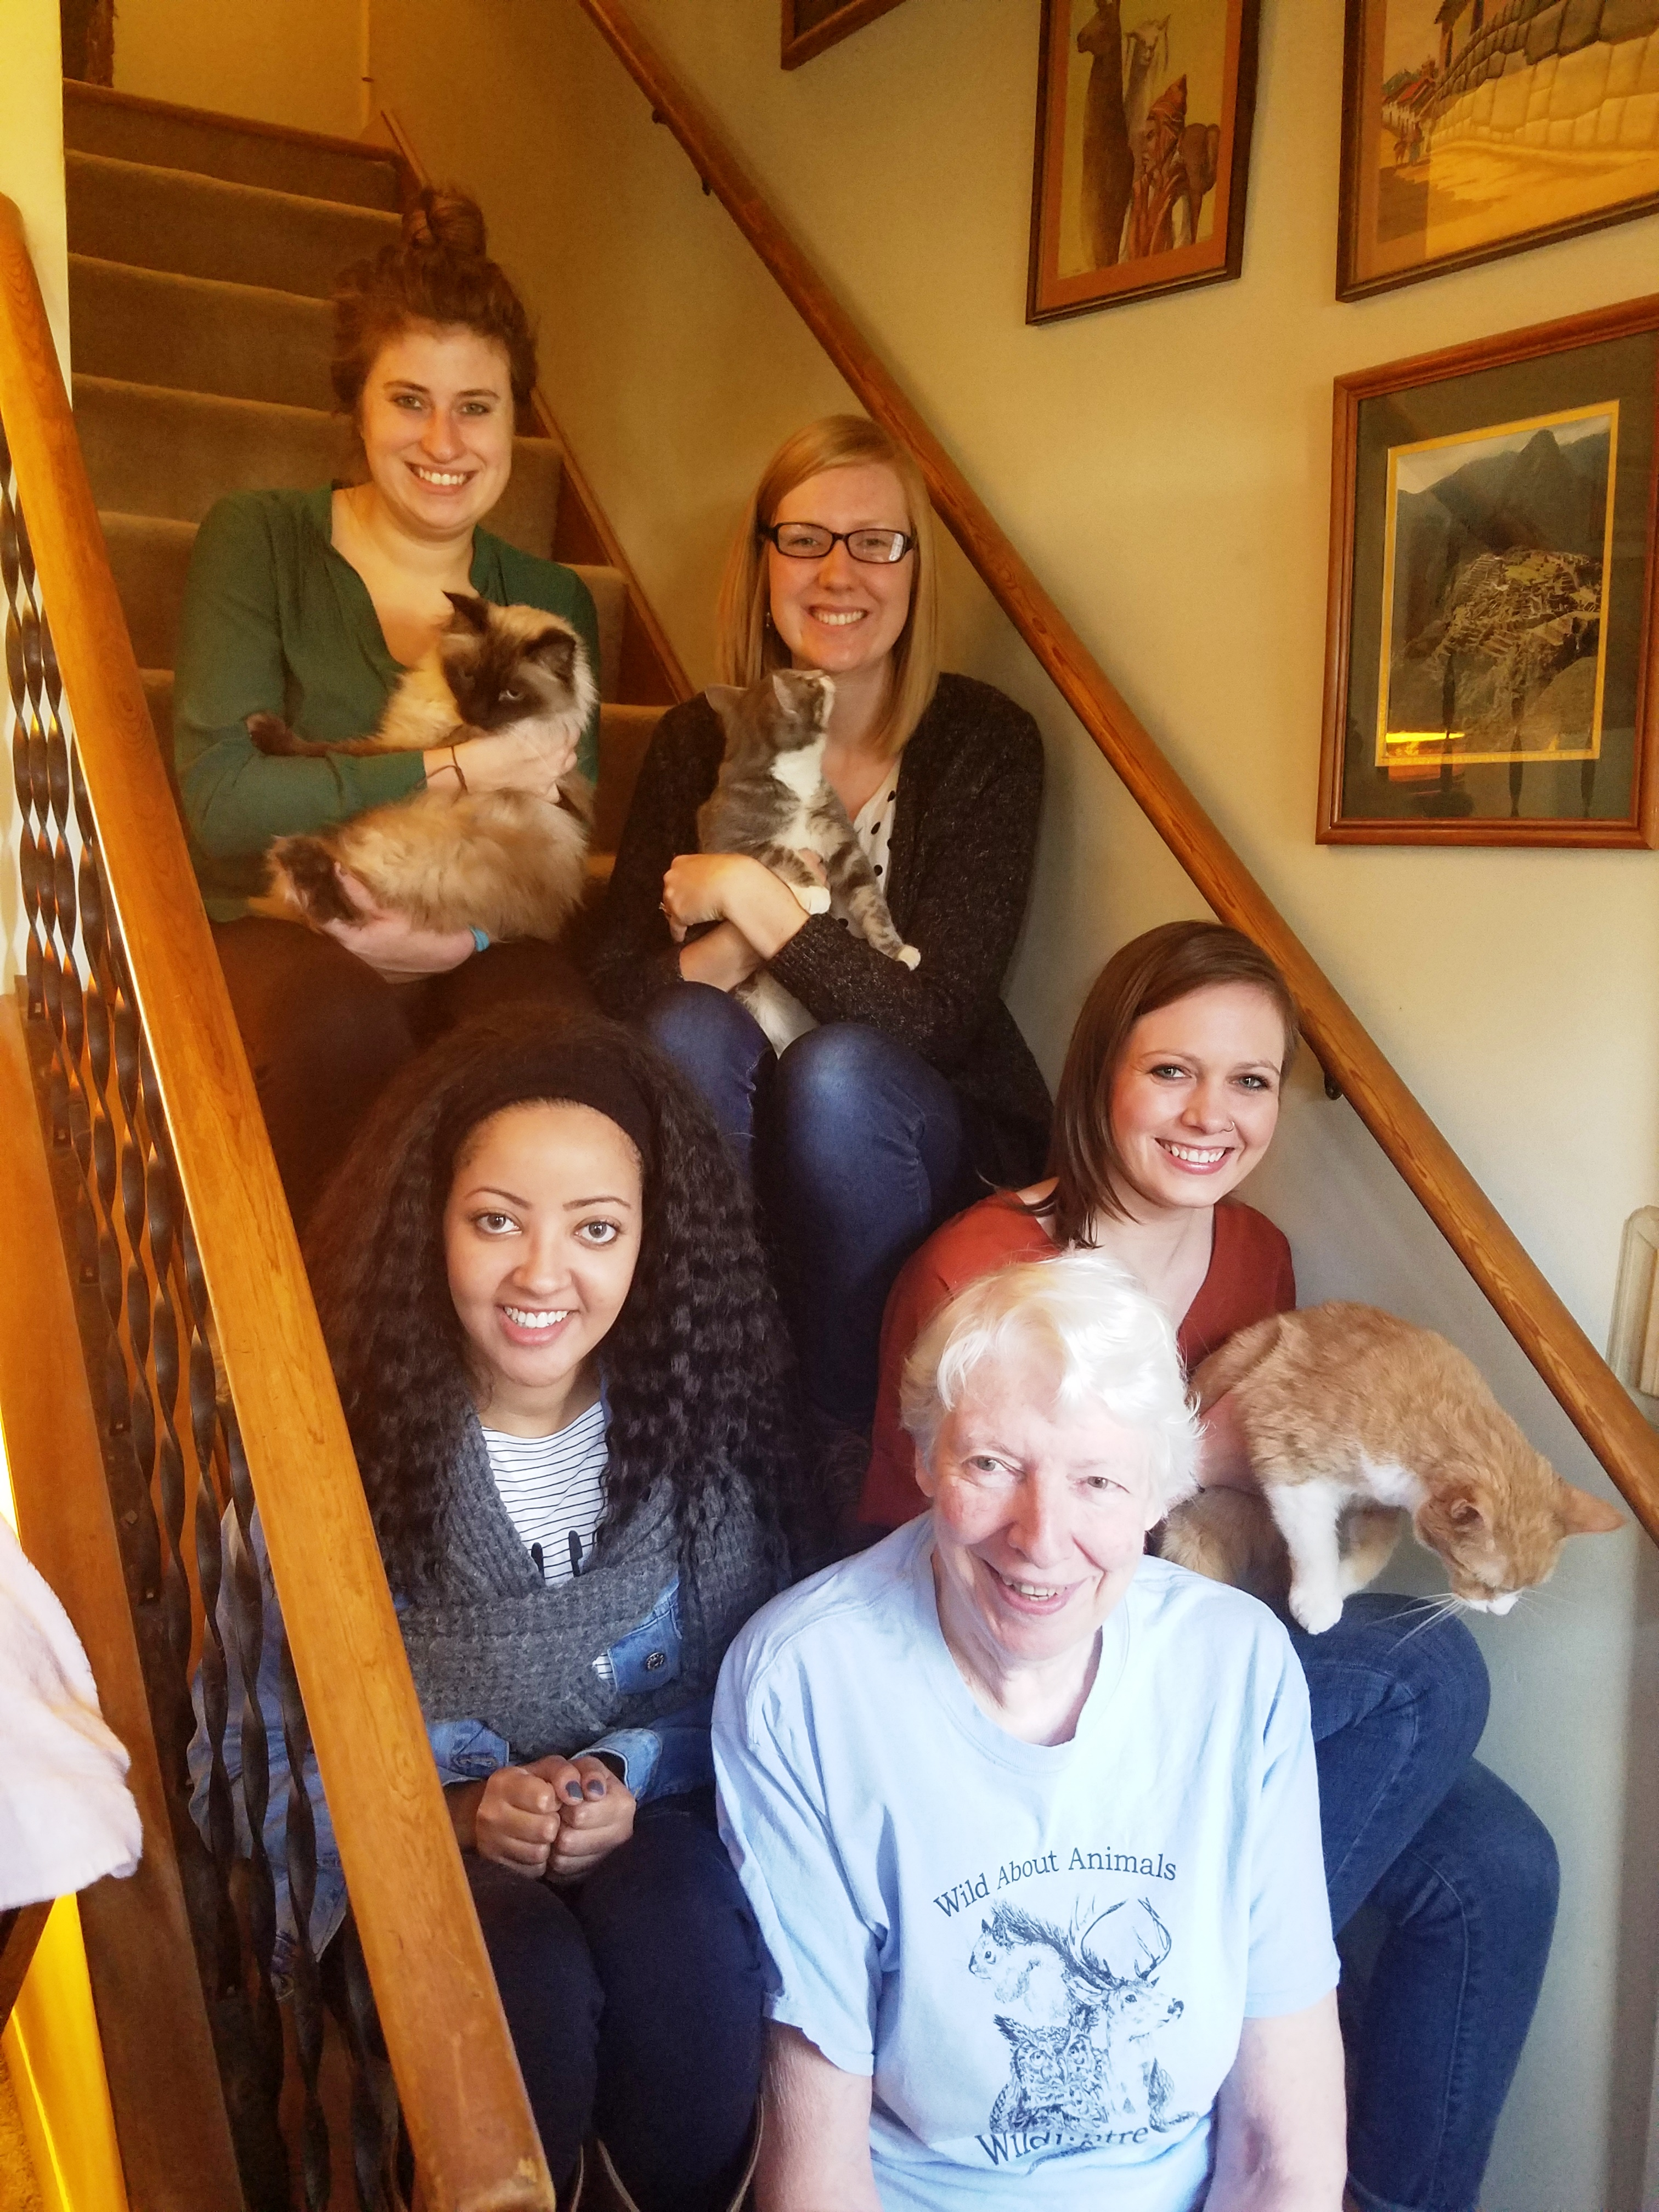 Graduate Students Raise Money for Local Animal Shelter